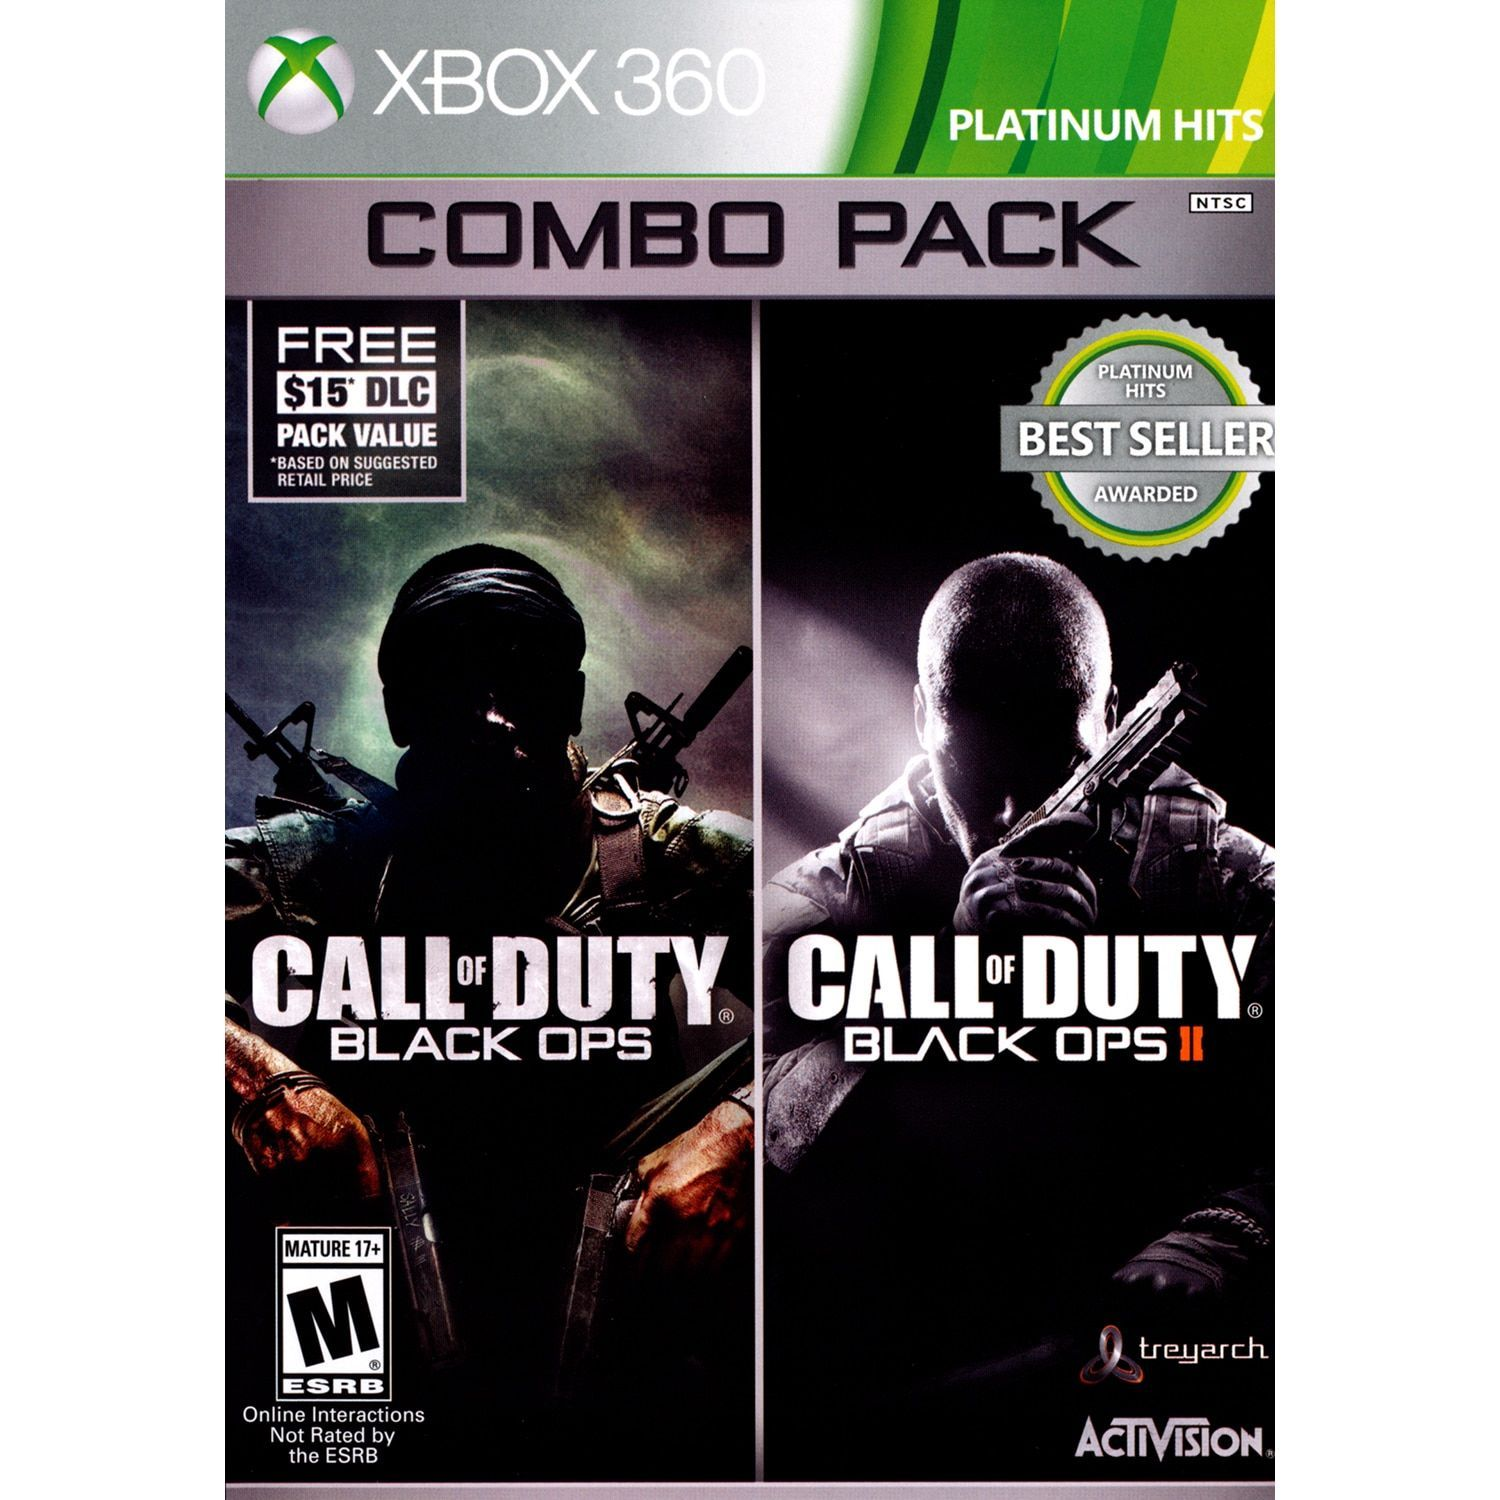 Call of duty ops 1 2 bundle with first strike map pack for xbox call of duty black ops 1 2 bundle with first strike map pack for xbox 360 overstock shopping the best deals on new games gumiabroncs Choice Image